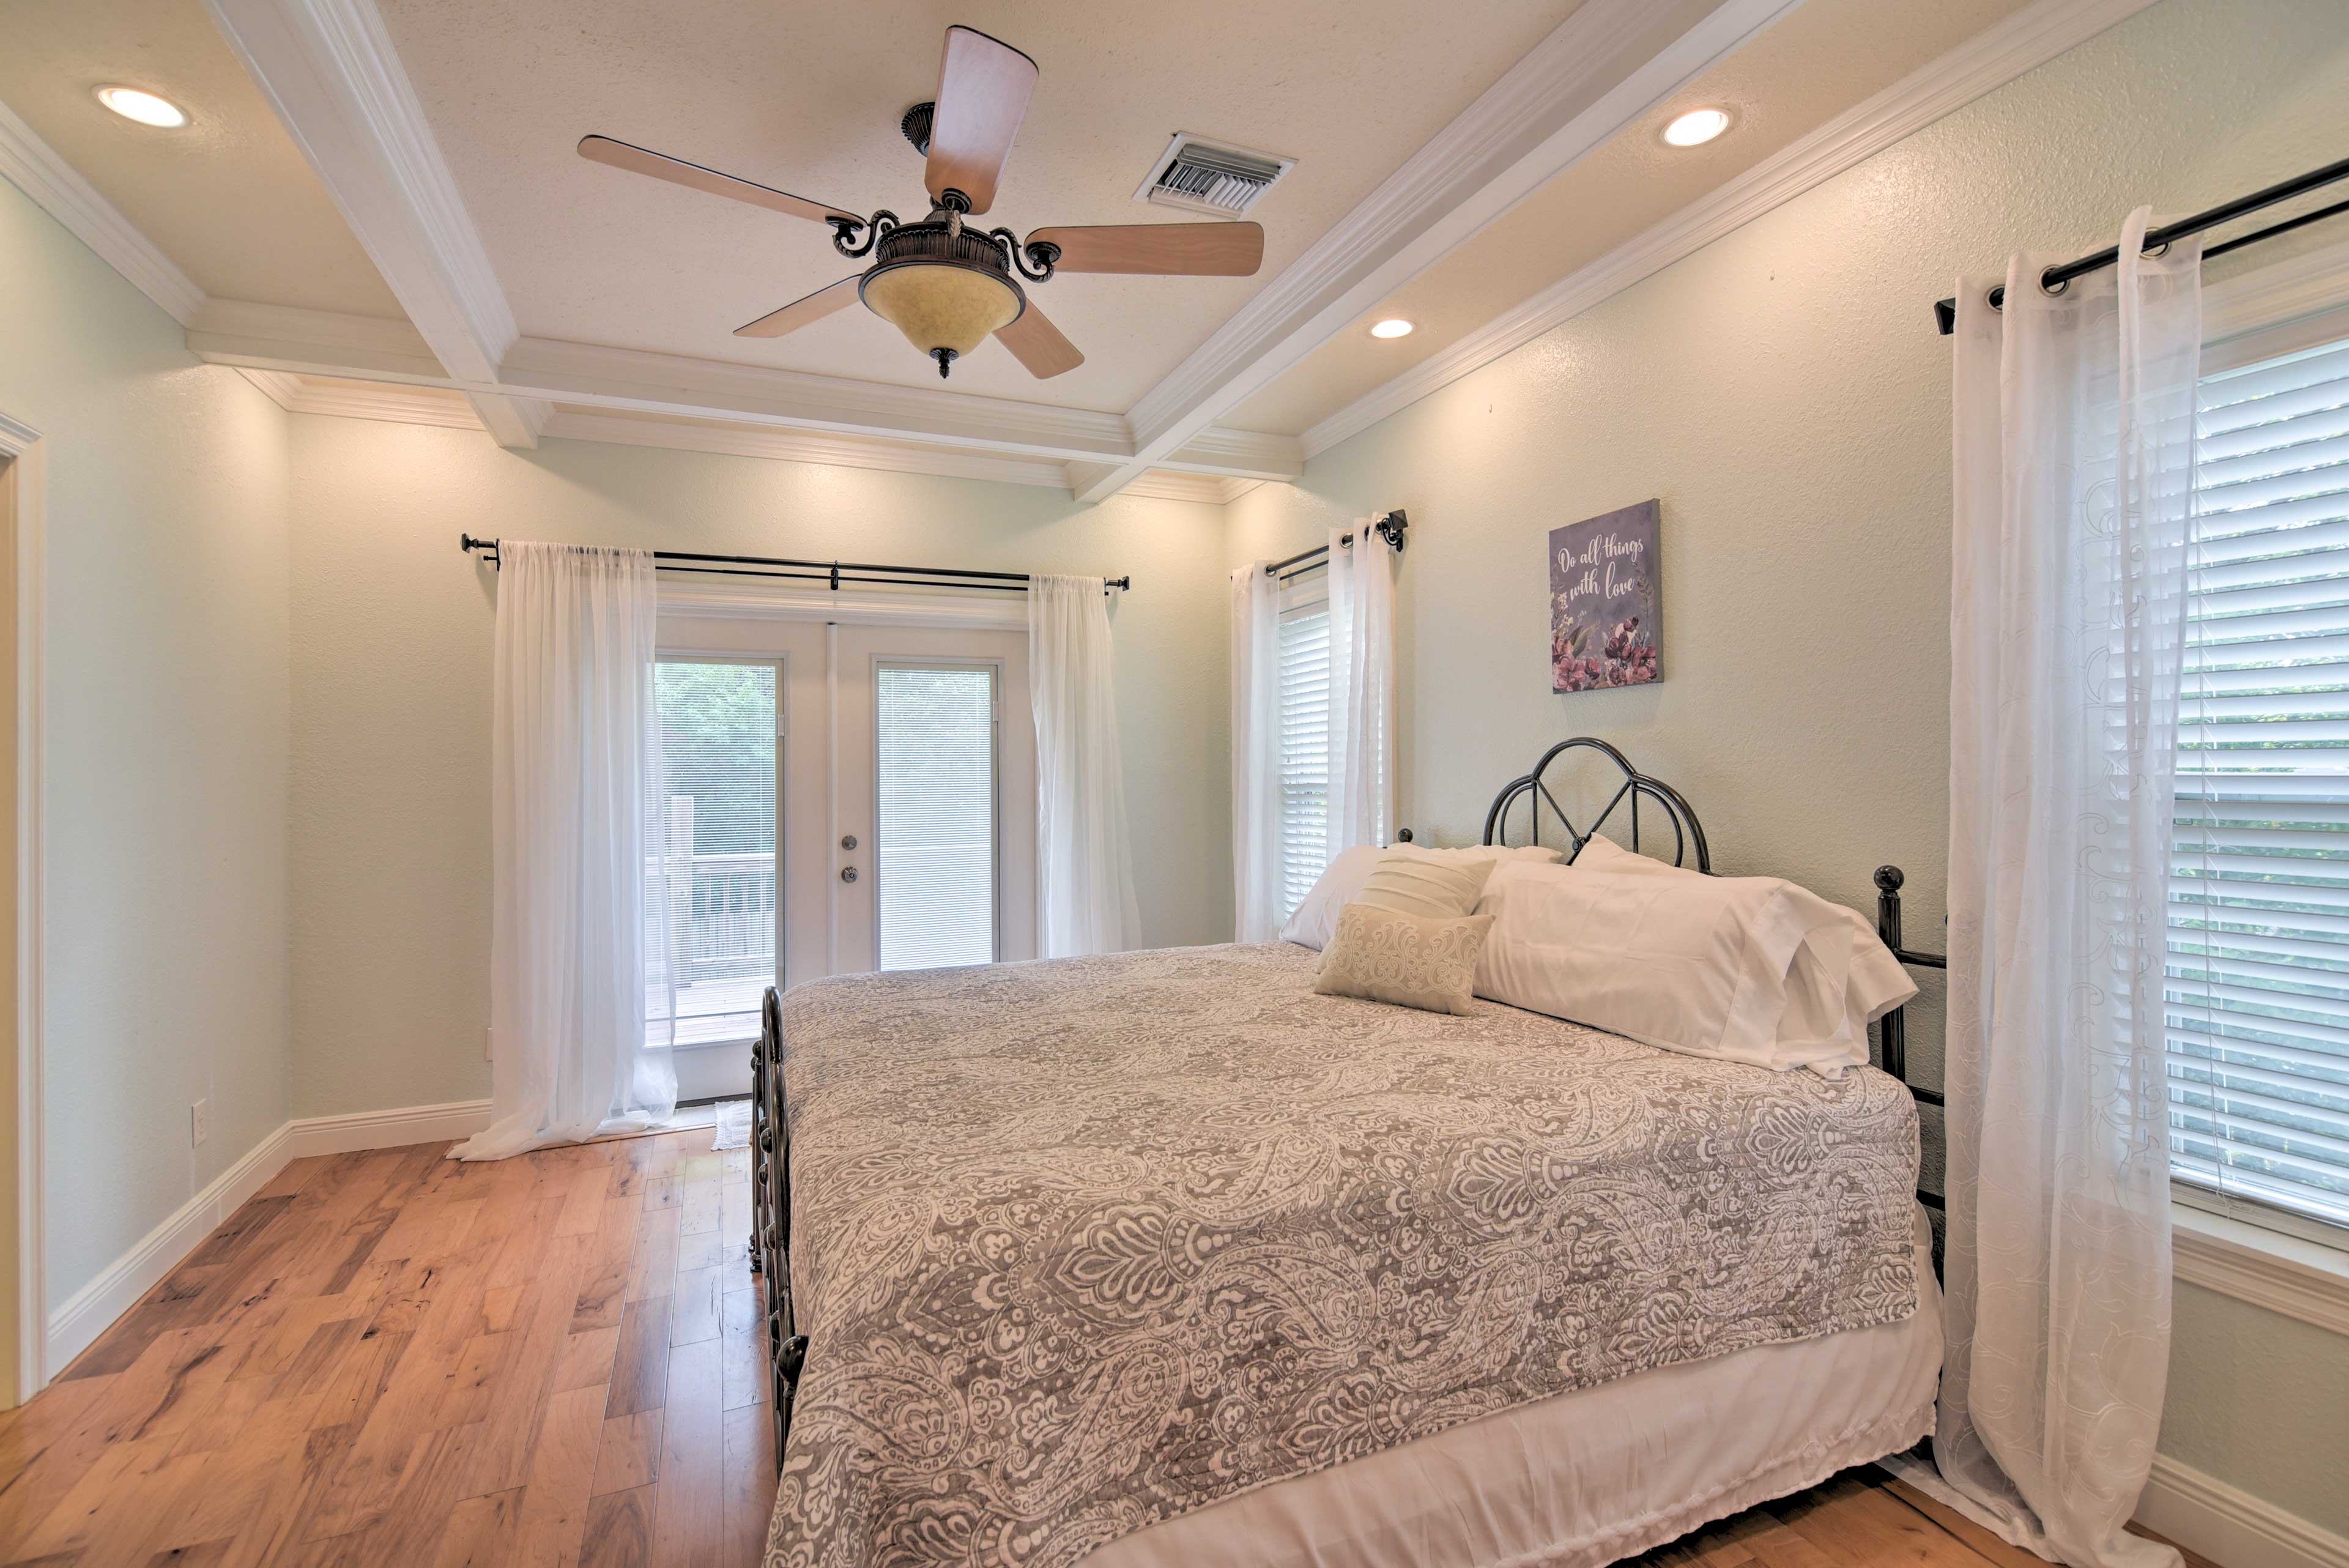 Two lucky guests can claim the master bedroom!